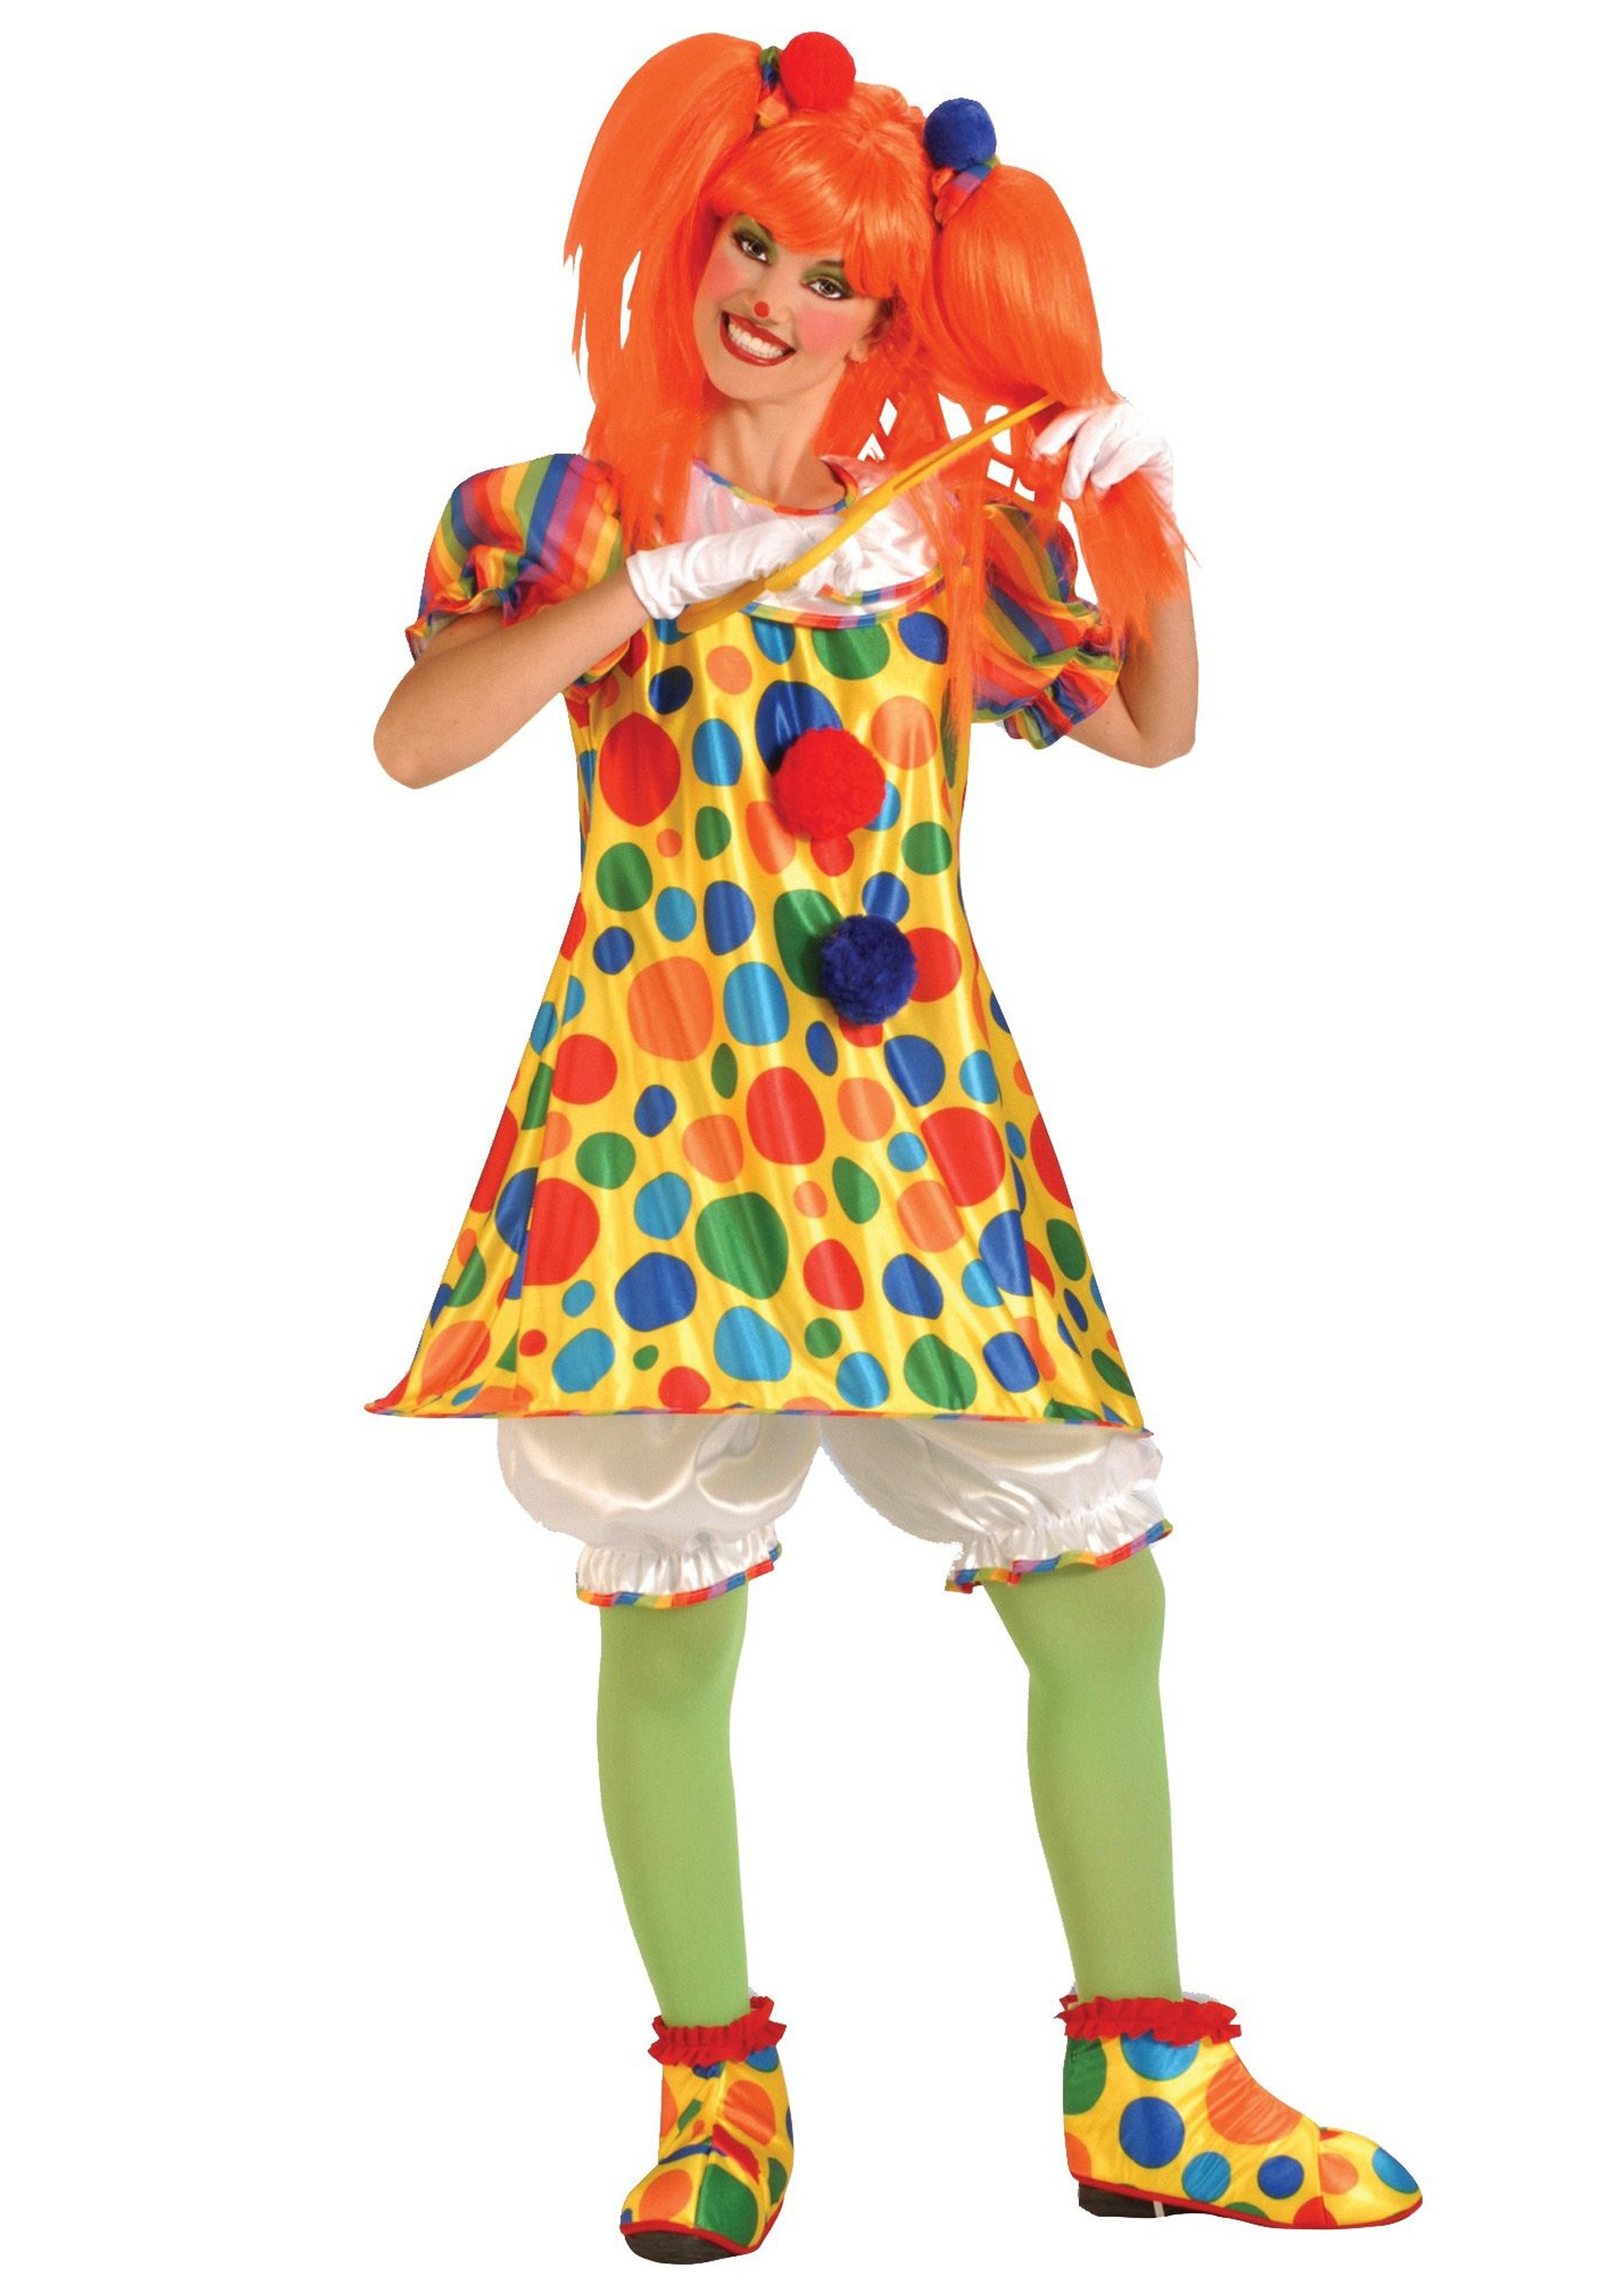 sc 1 st  Halloween Costumes & Giggles the Clown Costume